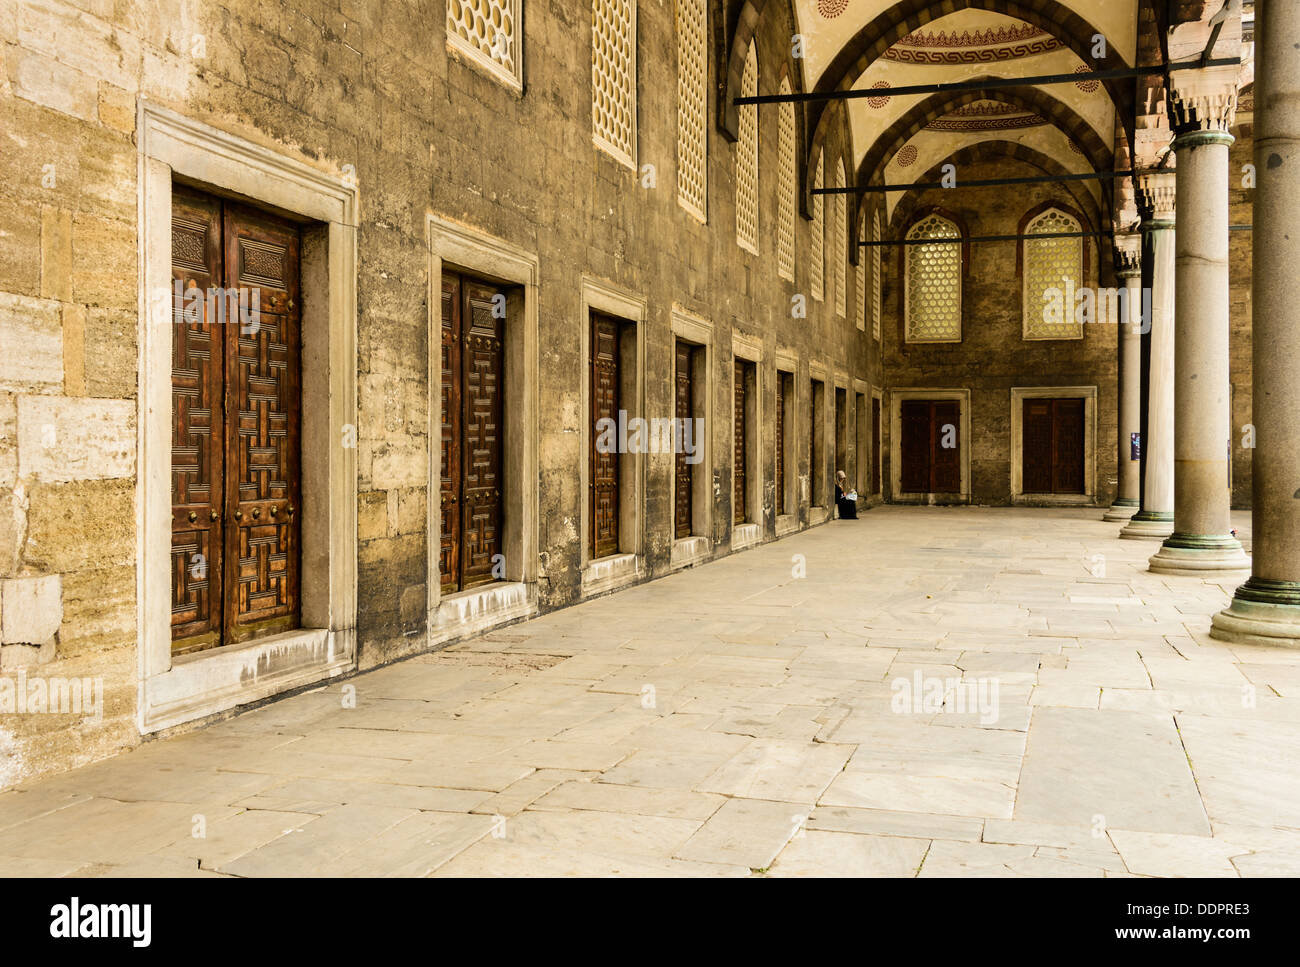 Blue Mosque Hallway in the main courtyard, Istanbul,Turkey - Stock Image